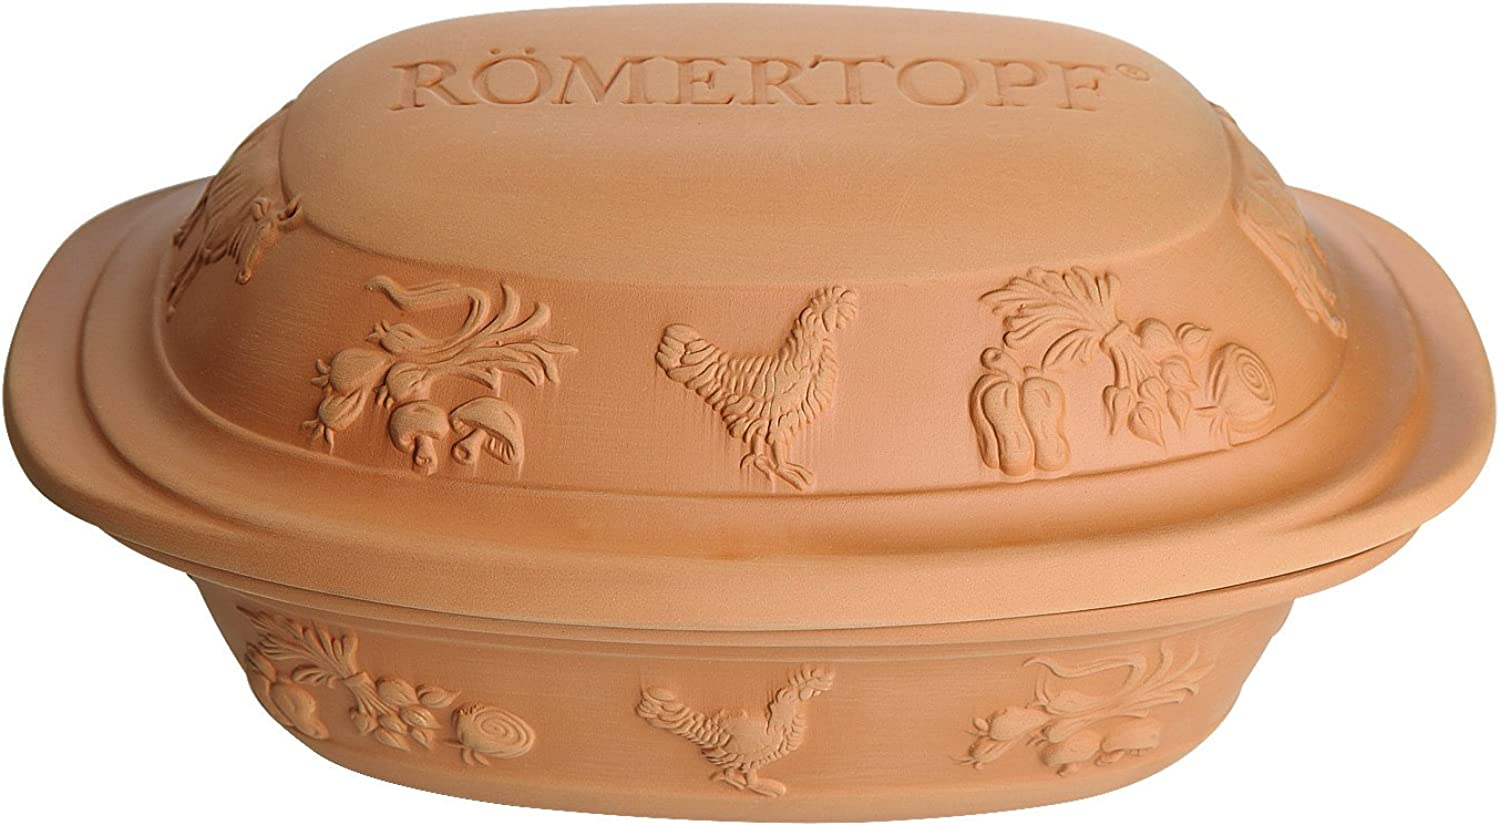 Romertopf by Reston Lloyd Rustico Series Natural Glazed Clay Cooker, Large, 4.2 Quart